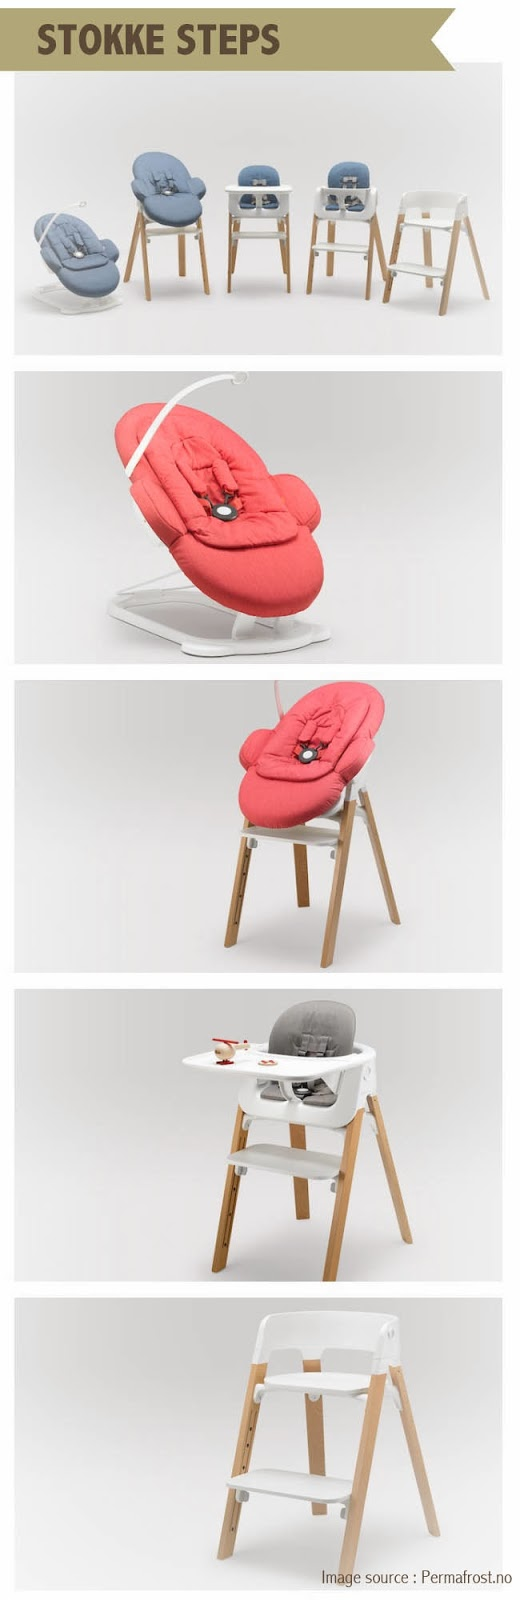 Stokke Steps Chair Stokkelovers